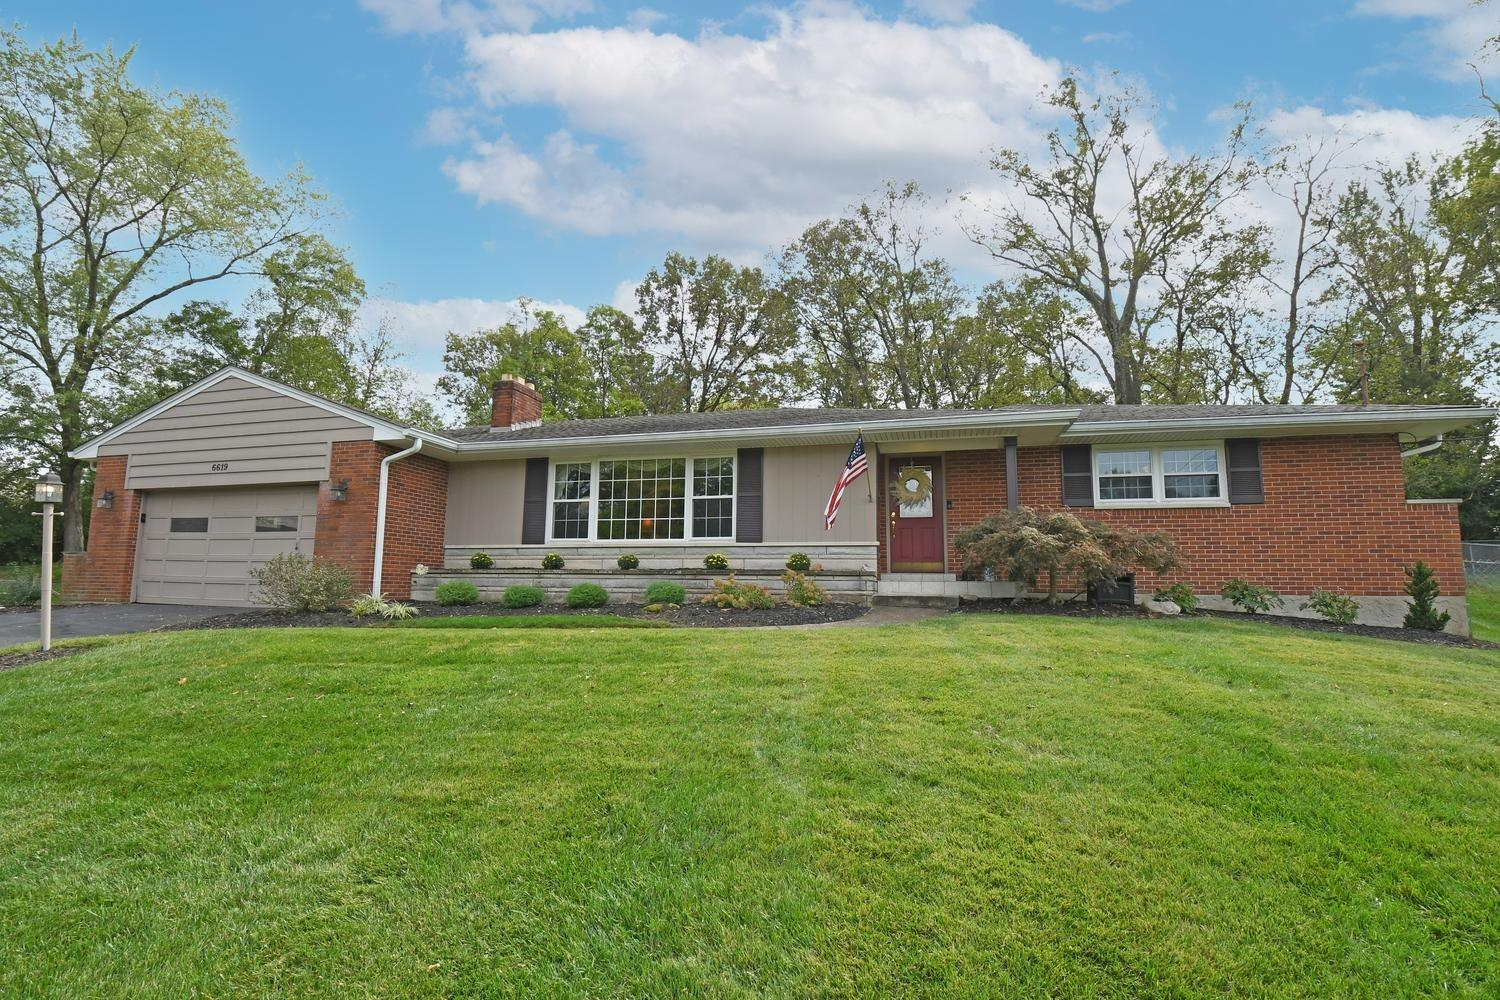 6619 Apache Circle, Madeira, Ohio 45243, 3 Bedrooms Bedrooms, 8 Rooms Rooms,2 BathroomsBathrooms,Single Family Residence,For Sale,Apache,1719244